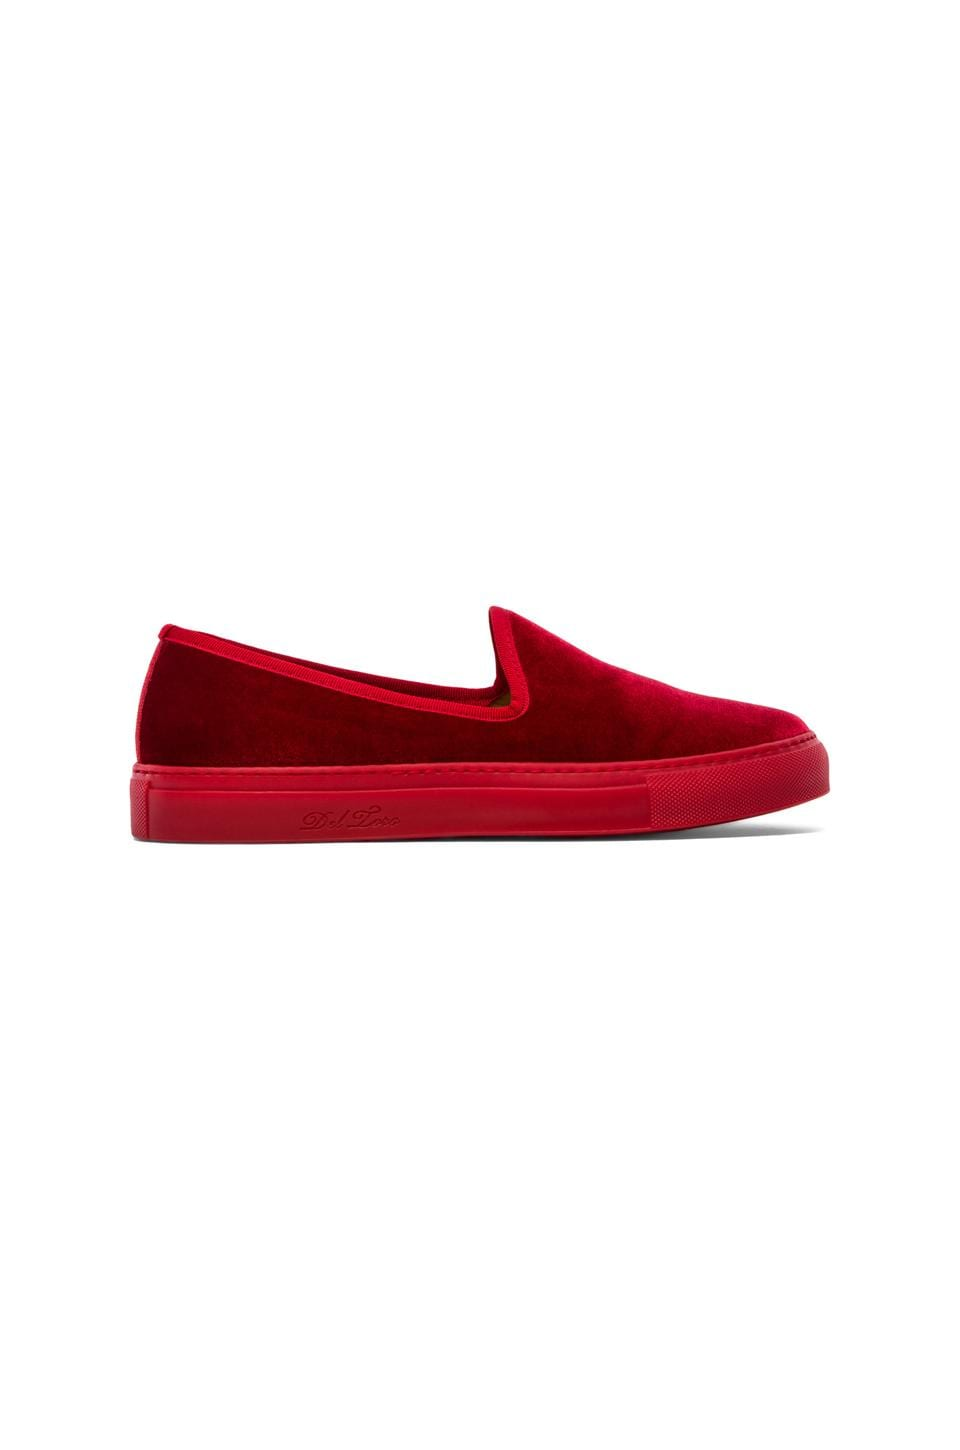 Del Toro Velour Slip-On in Red